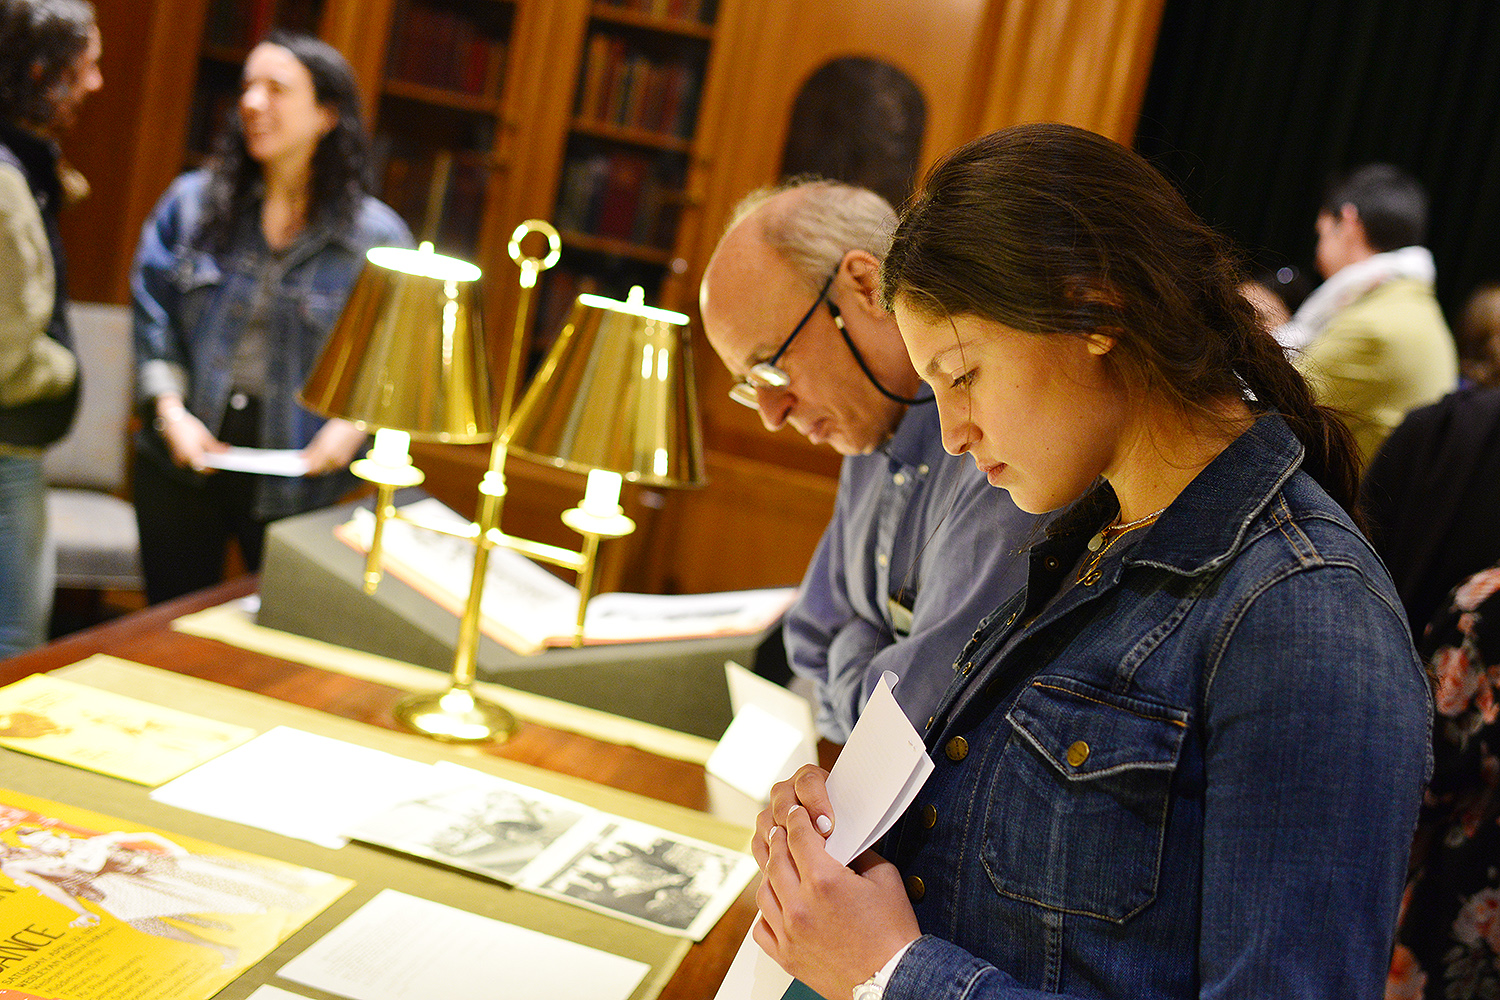 Students from Wesleyan's French 325 class Museums, Objects and Empire, recently presented a pop-up exhibition on the history that surrounds Wesleyan's former museum that once occupied Judd Hall from 1871 to 1957.